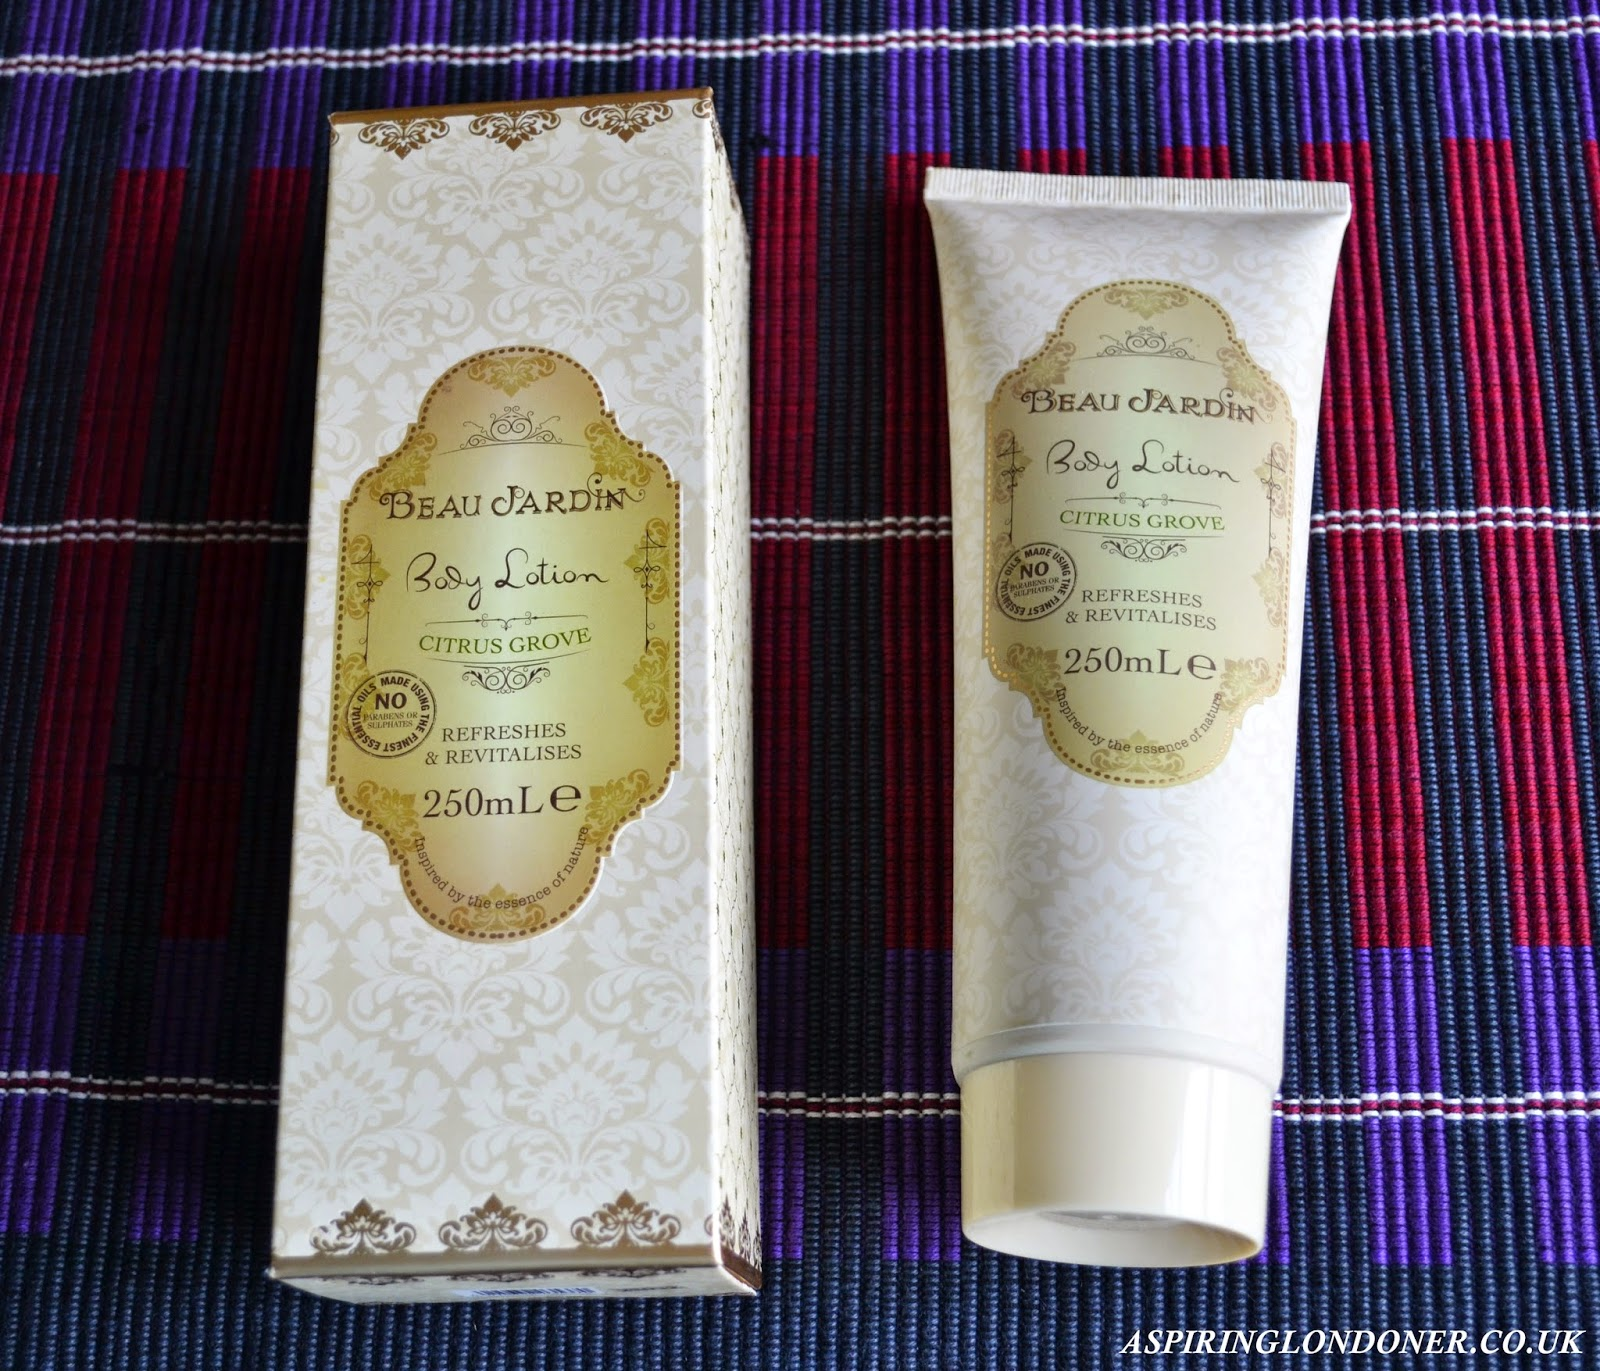 Heathcote ivory vintage beauty aspiring londoner for Beau jardin hand cream collection